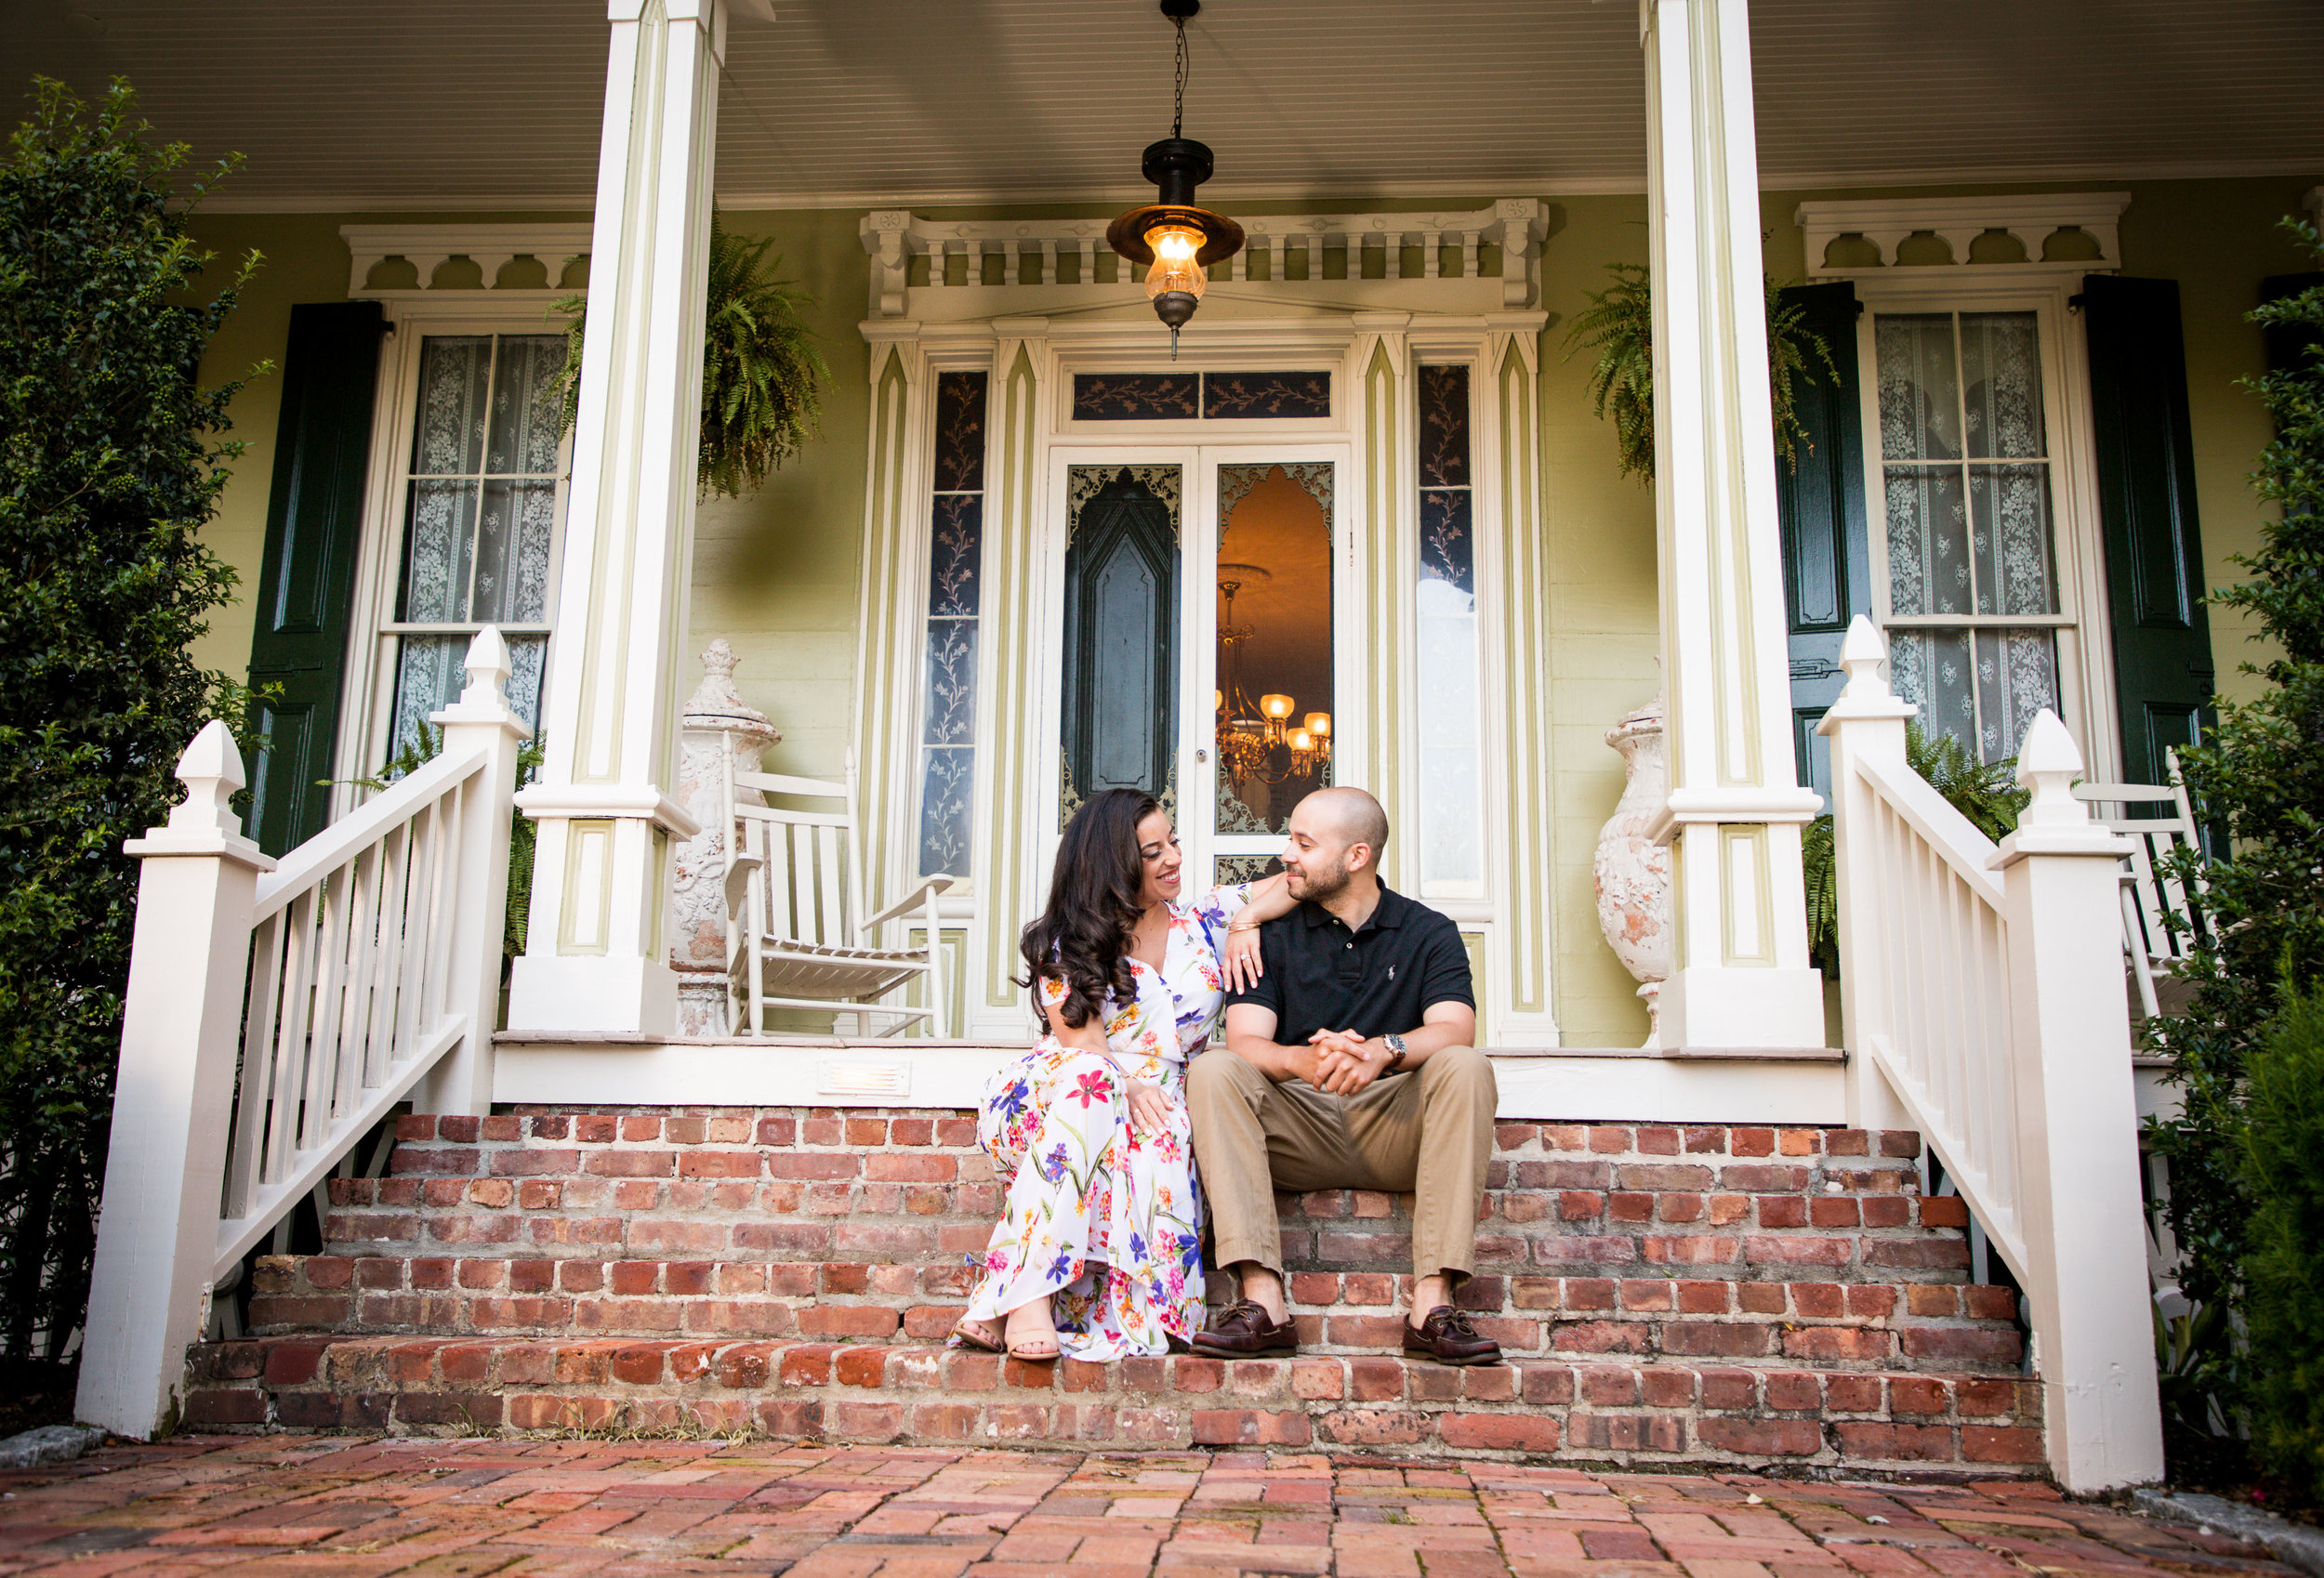 Engagement session at the historic wedding venue near Ocean City Md